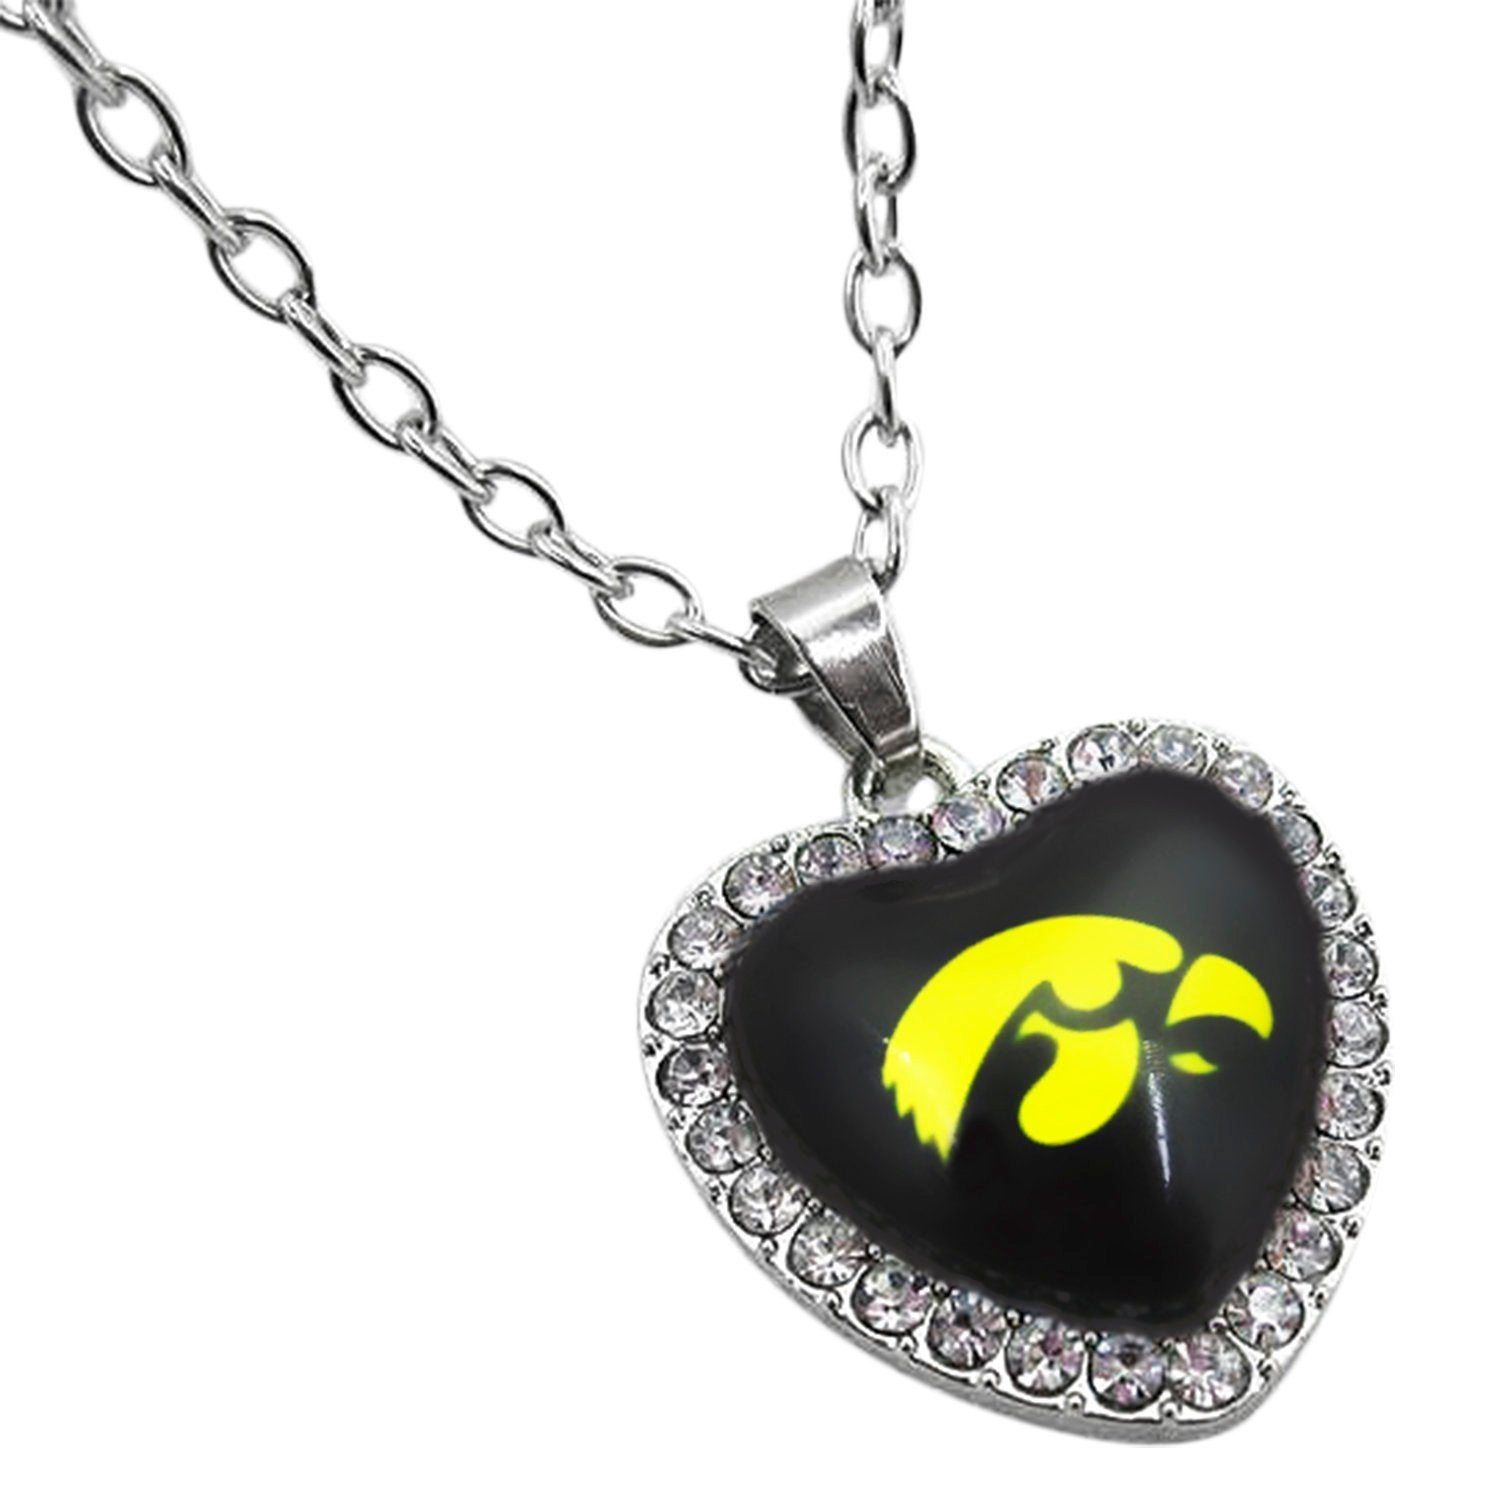 Iowa Hawkeyes Necklace, Simulated Diamond Crystal Heart Pendant, Hawkeyes  Logo Charm, Womens Jewelry Gift For Hawkeyes Fan, Student, Alumni Regarding Most Popular Heart Fan Pendant Necklaces (View 13 of 25)